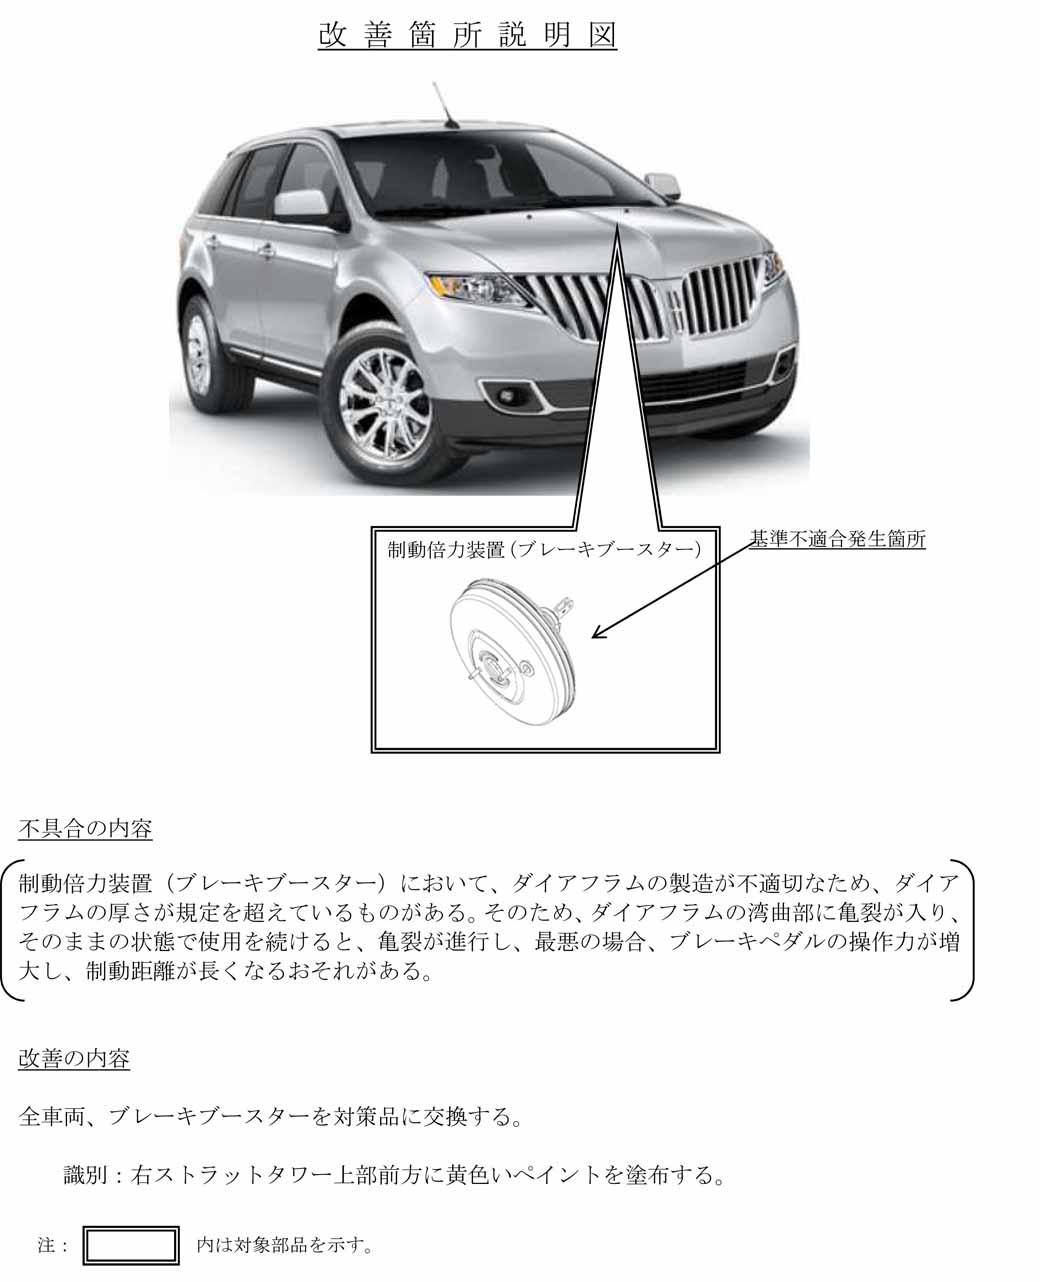 ford-japan-limited-recall-notification-of-the-braking-system-in-the-lincoln-mkx20160415-2